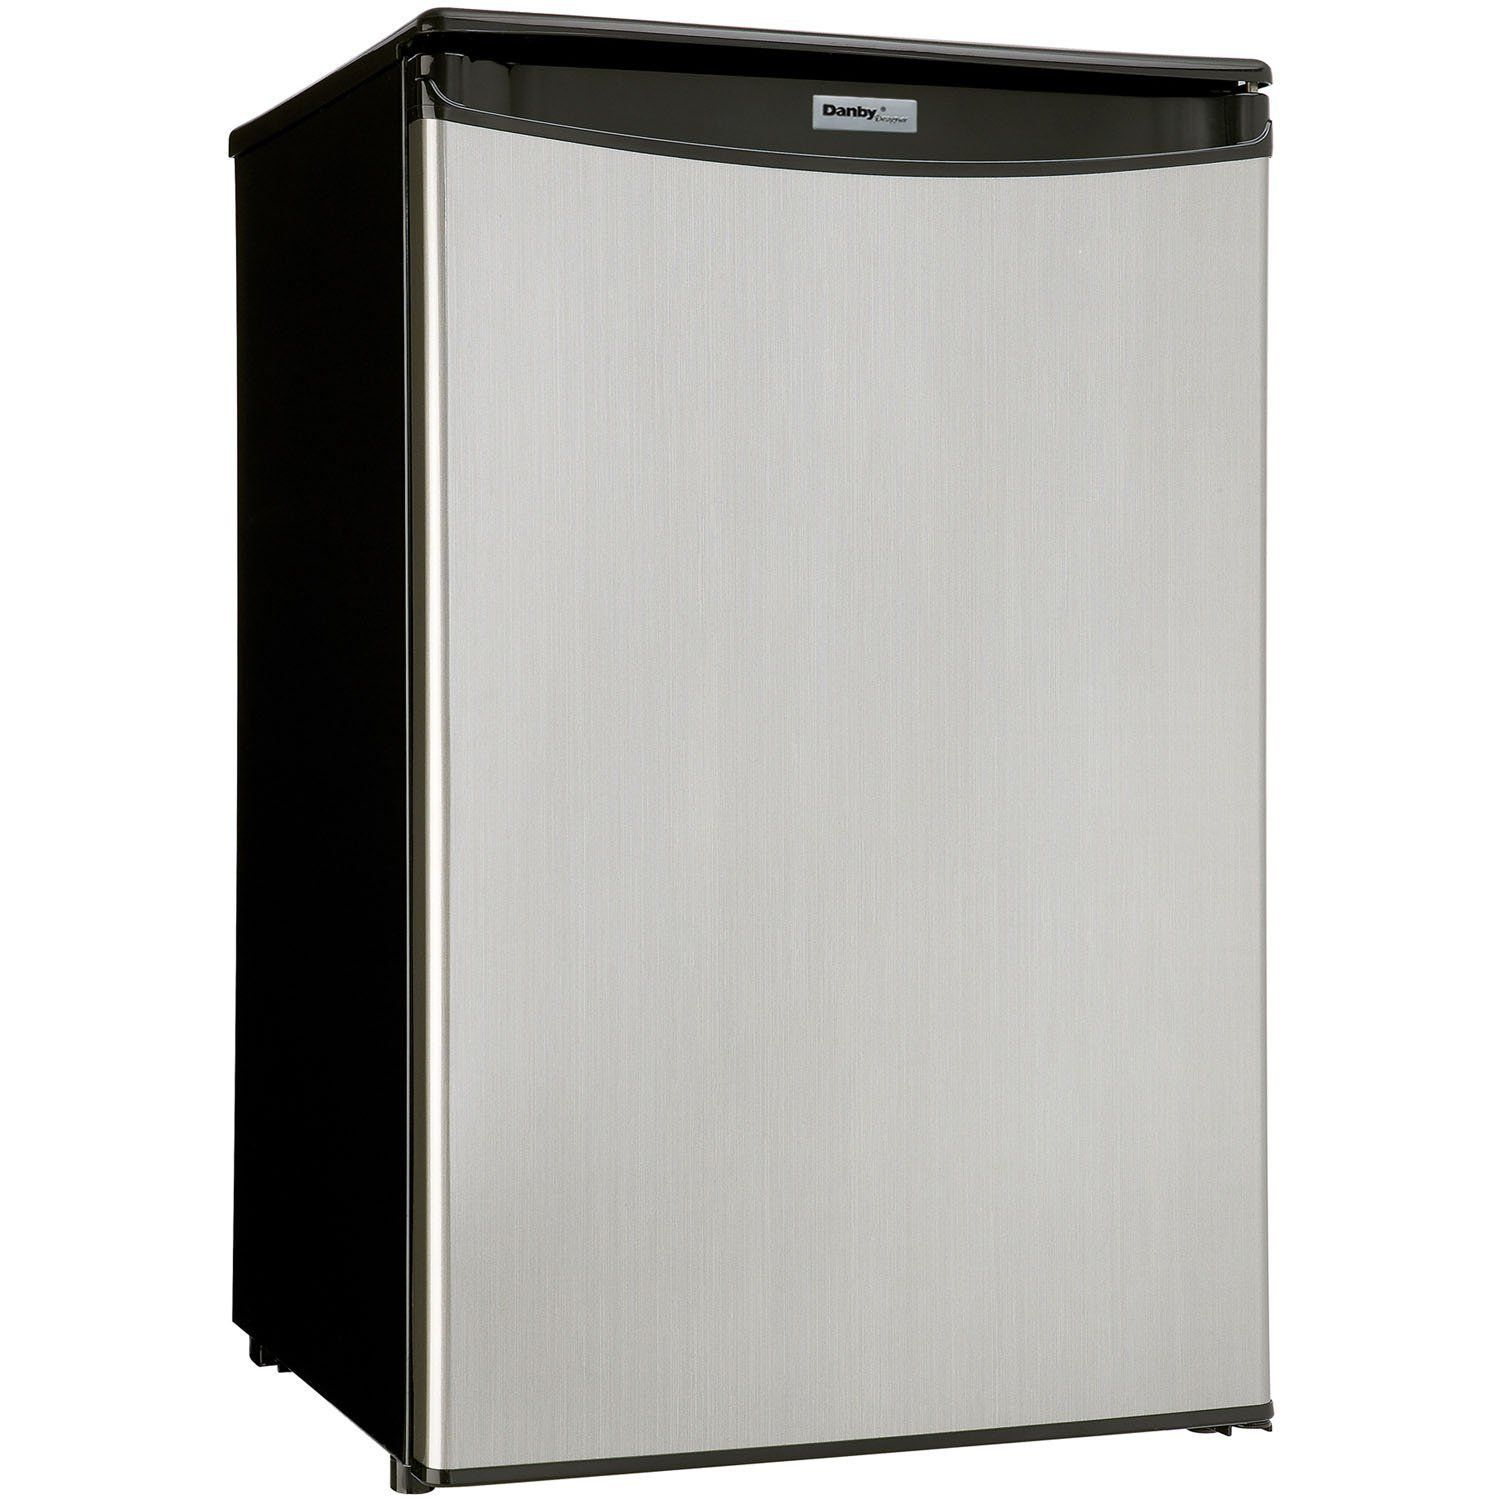 Perfect Mini Fridge 5gal Kegs No Freezer To Get In The Way Remove The Door Molding And Fit 2 Kegs Co2 Compact Refrigerator All Refrigerator Compact Fridge